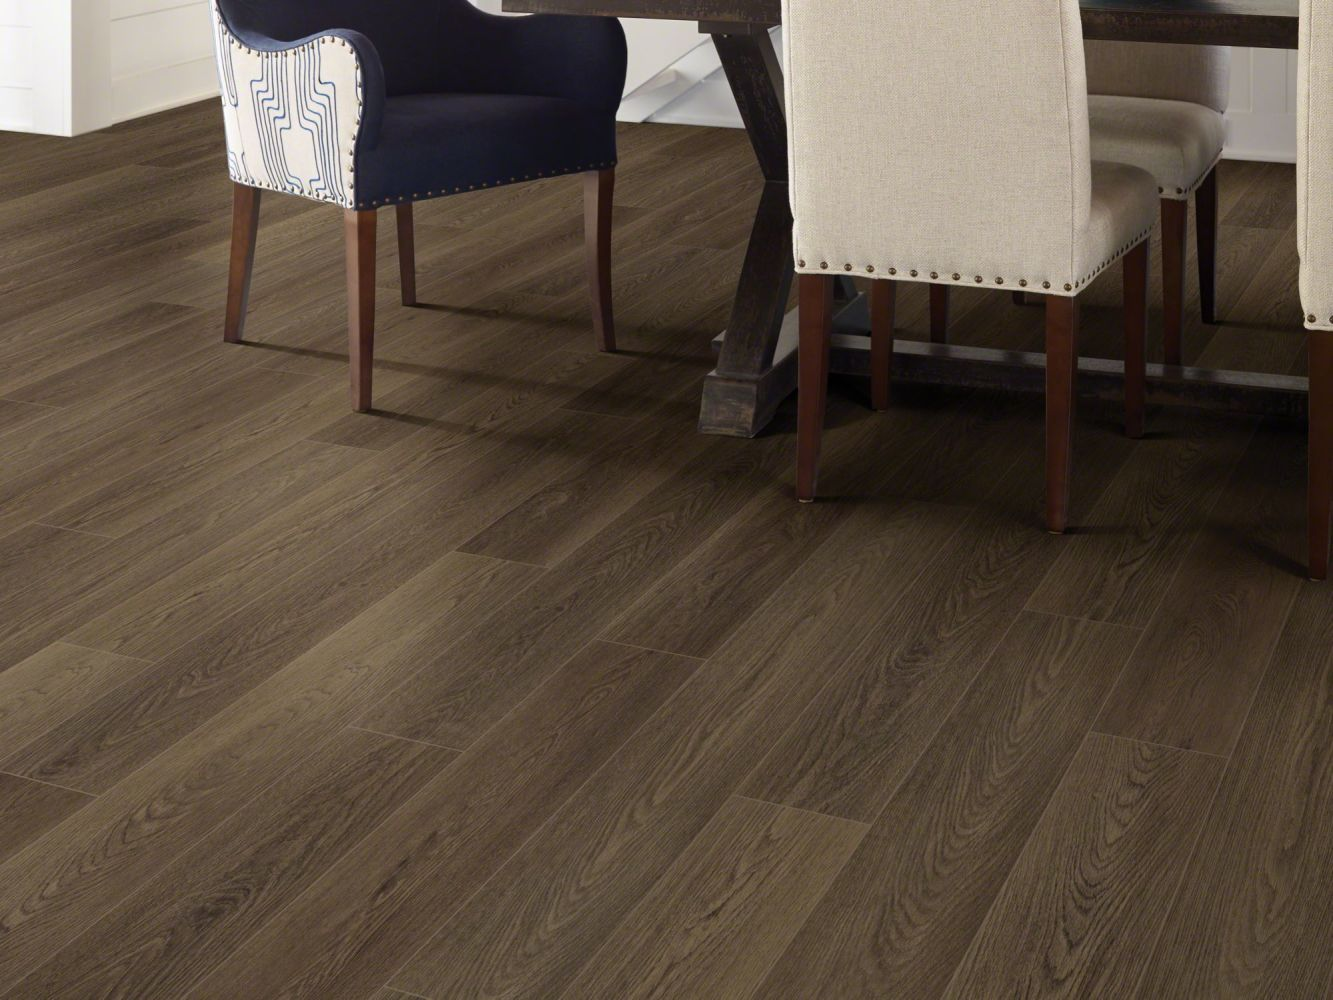 Shaw Floors Resilient Residential Distinction Plus Barrel Oak 07066_2045V